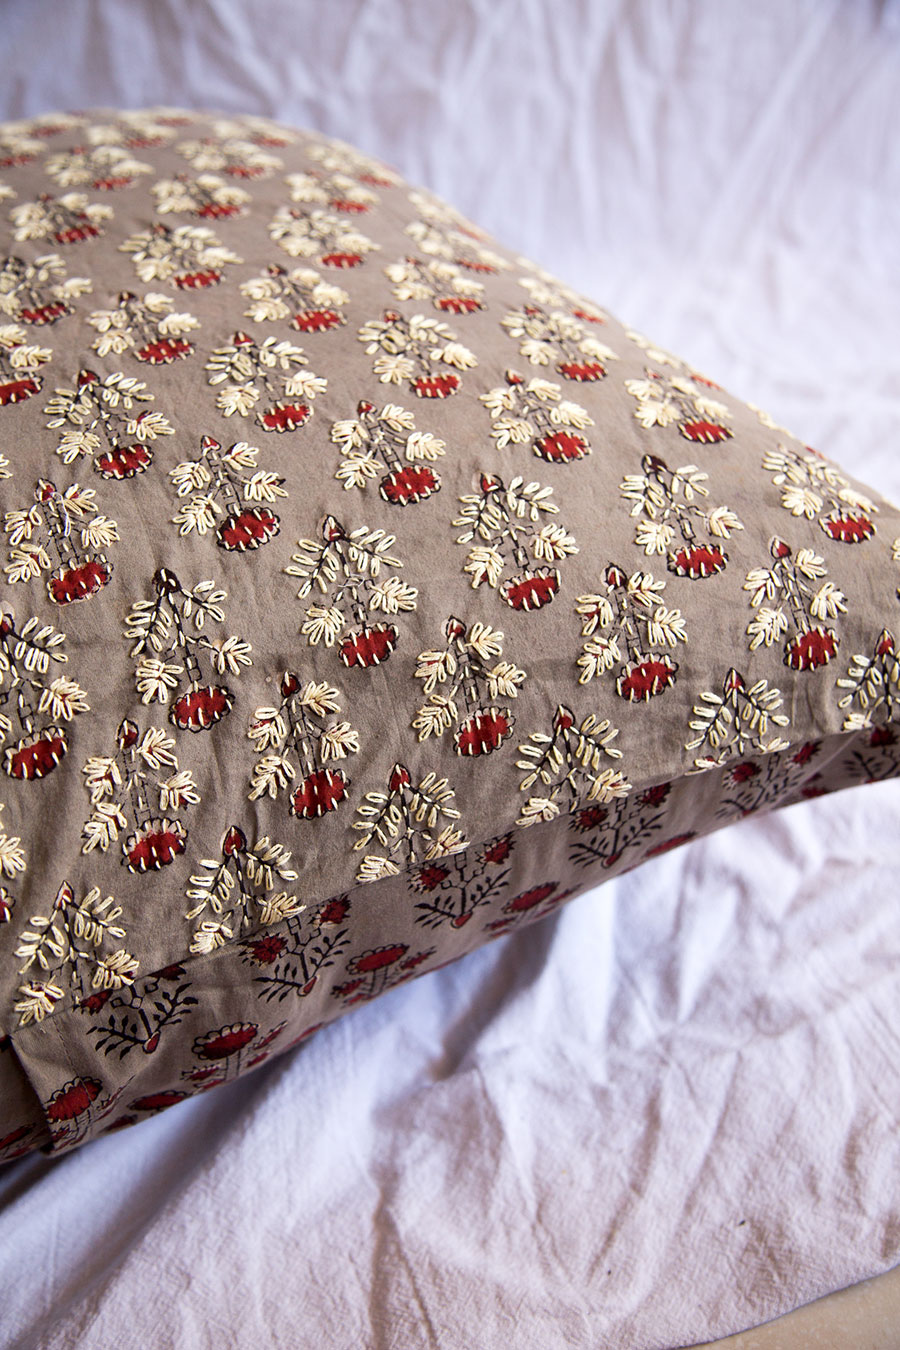 Tulasii block print embroidered cushions